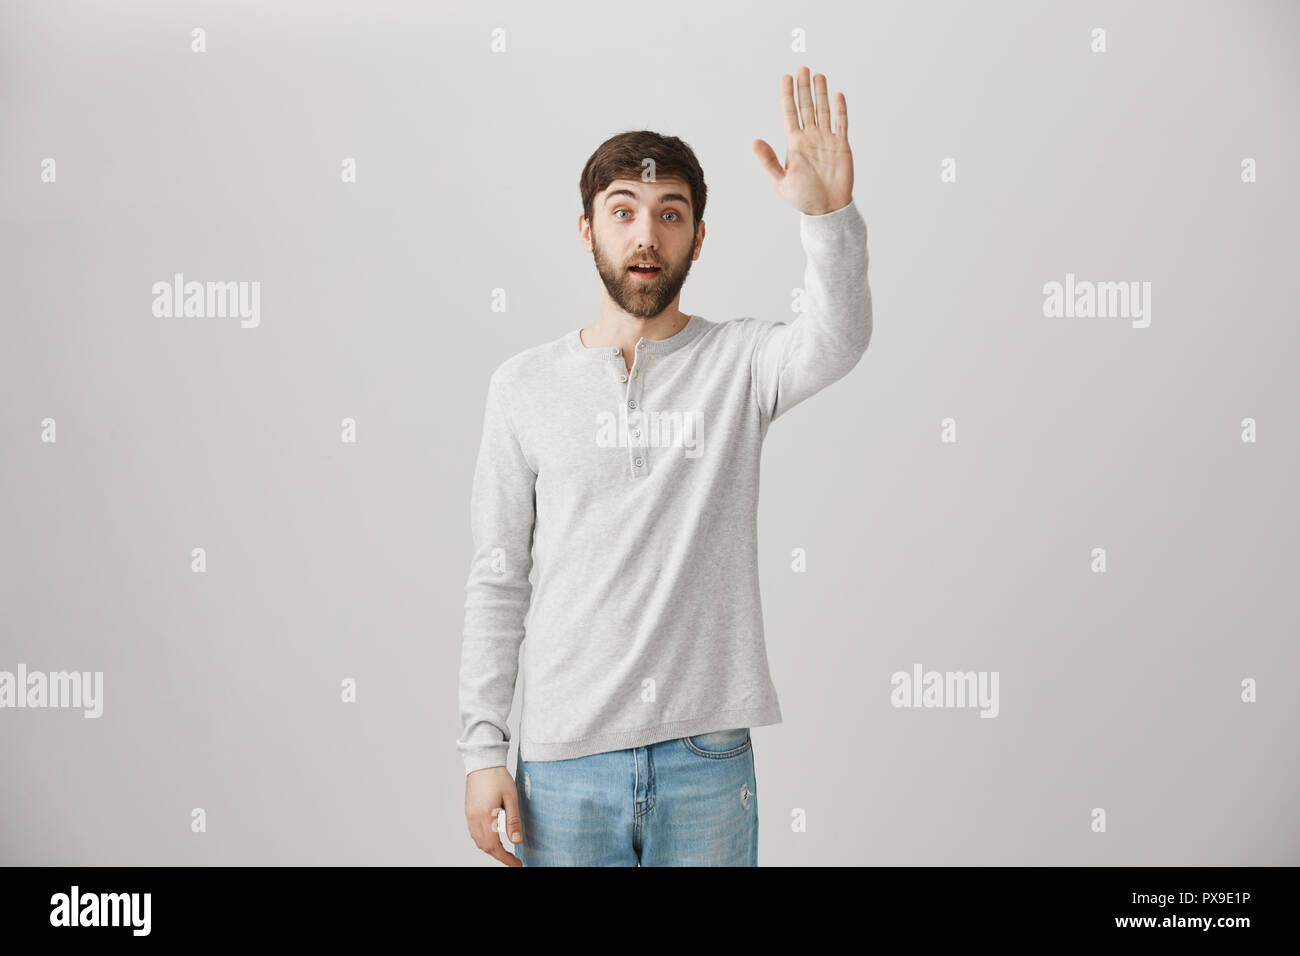 a15e30997 Surprised ordinary bearded guy standing with lifted hand as if waving or  greeting someone on street